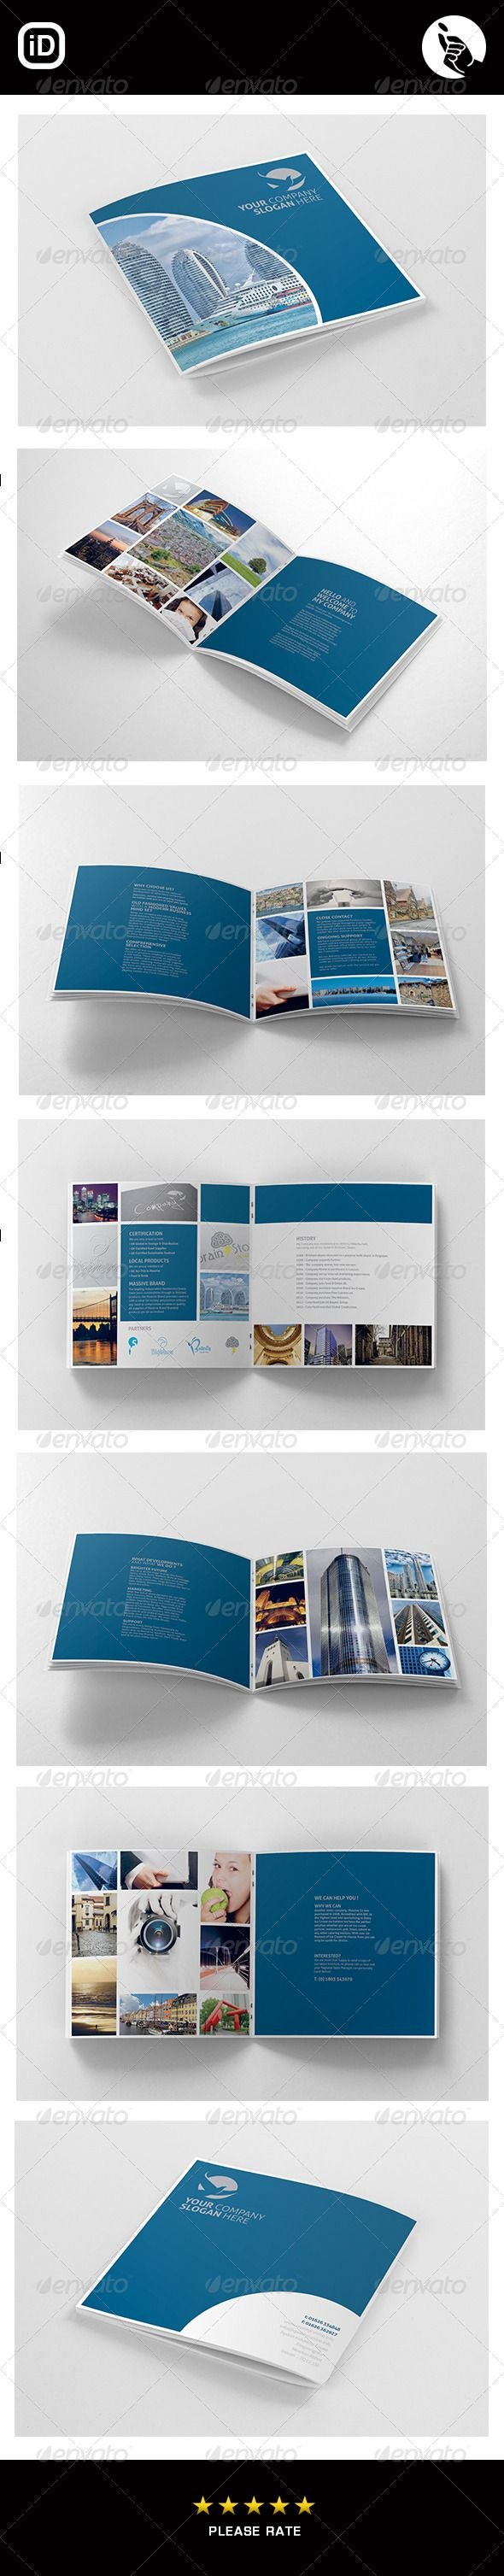 Corporate Square  Page Brochure  Design Layout  Brochure Design Regarding 12 Page Brochure Template